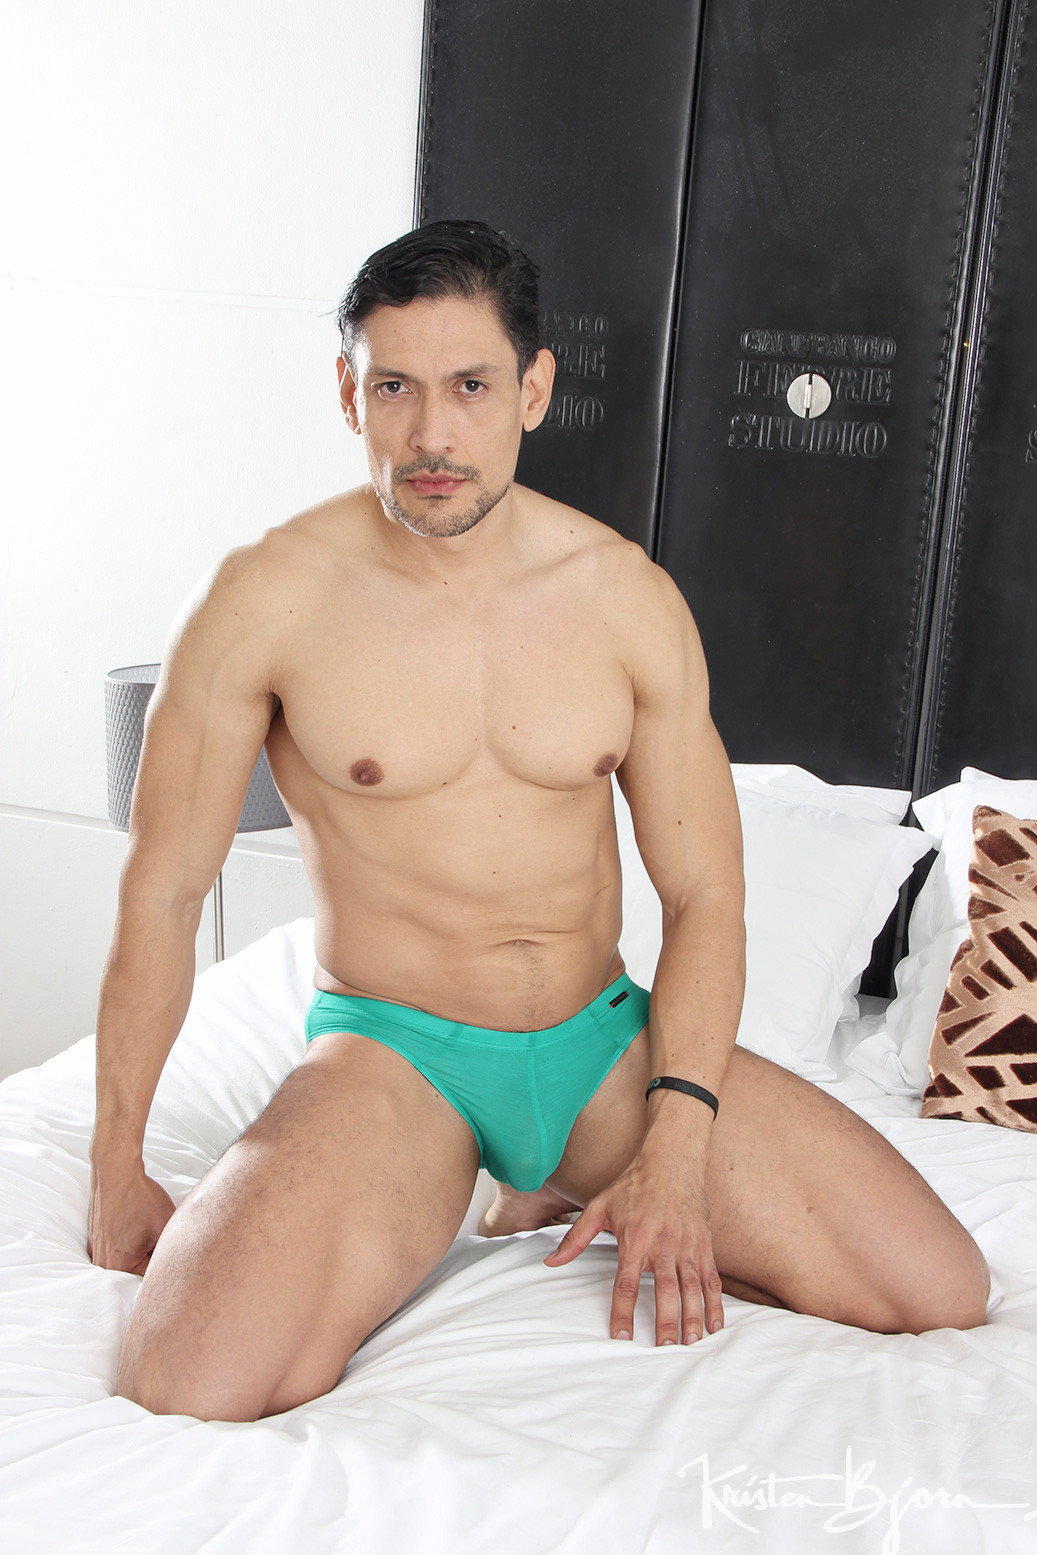 Casting Couch #402: Maximo Fuentes, John Rodriguez - Gallery